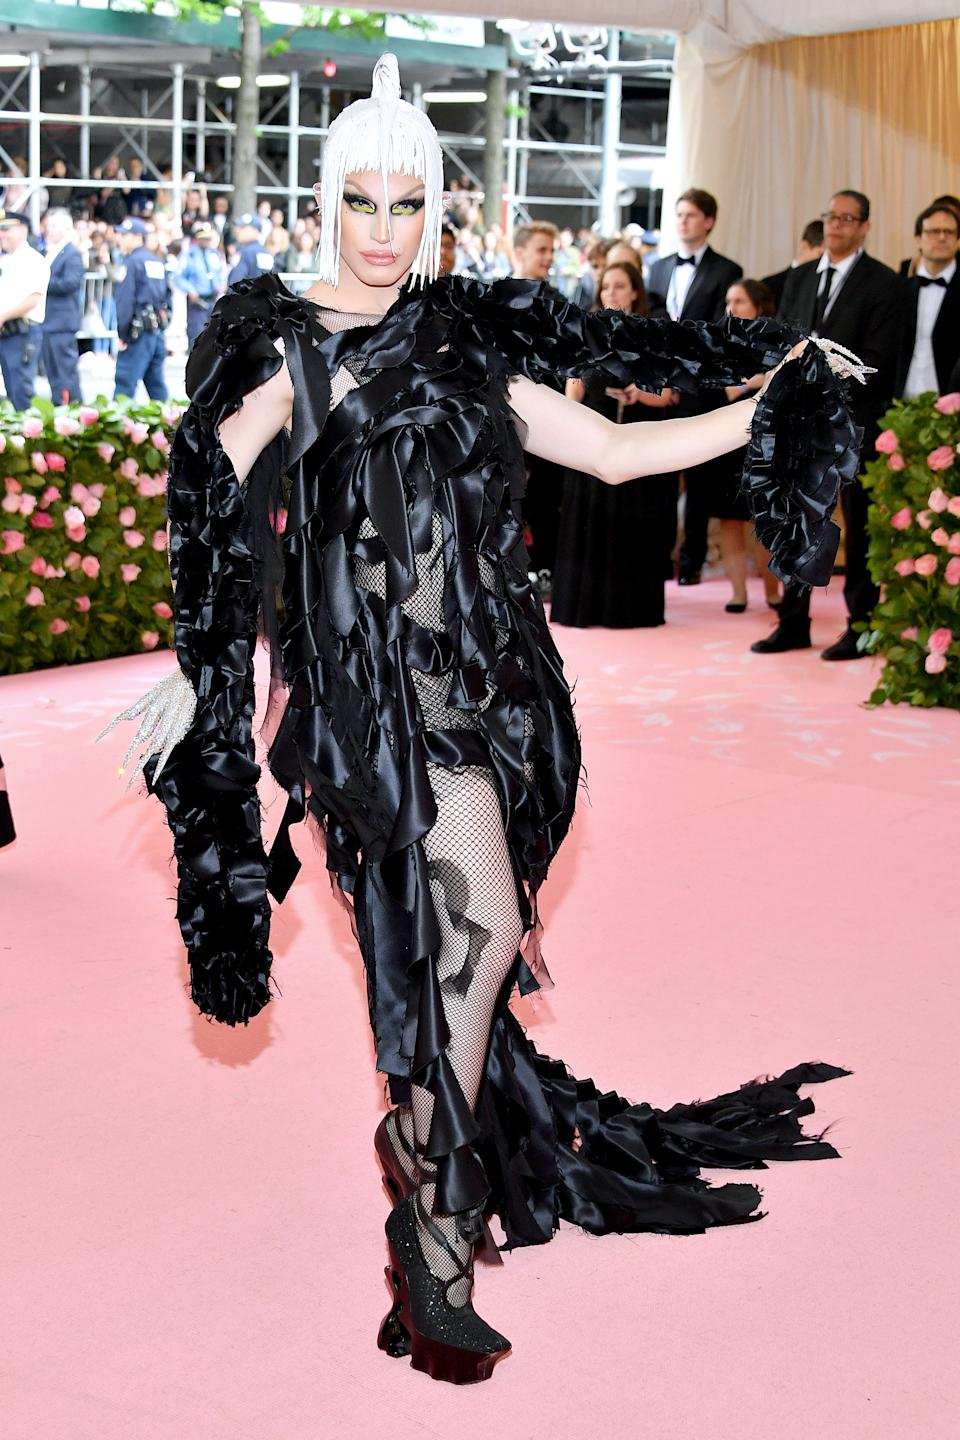 Drag queen Aquaria was seen taking the Camp theme firmly in her stride, and arrived at the Met donning a black silk gown, ribboned by layers and matched to gem-encrusted, manicured gloves. Photo: Getty Images